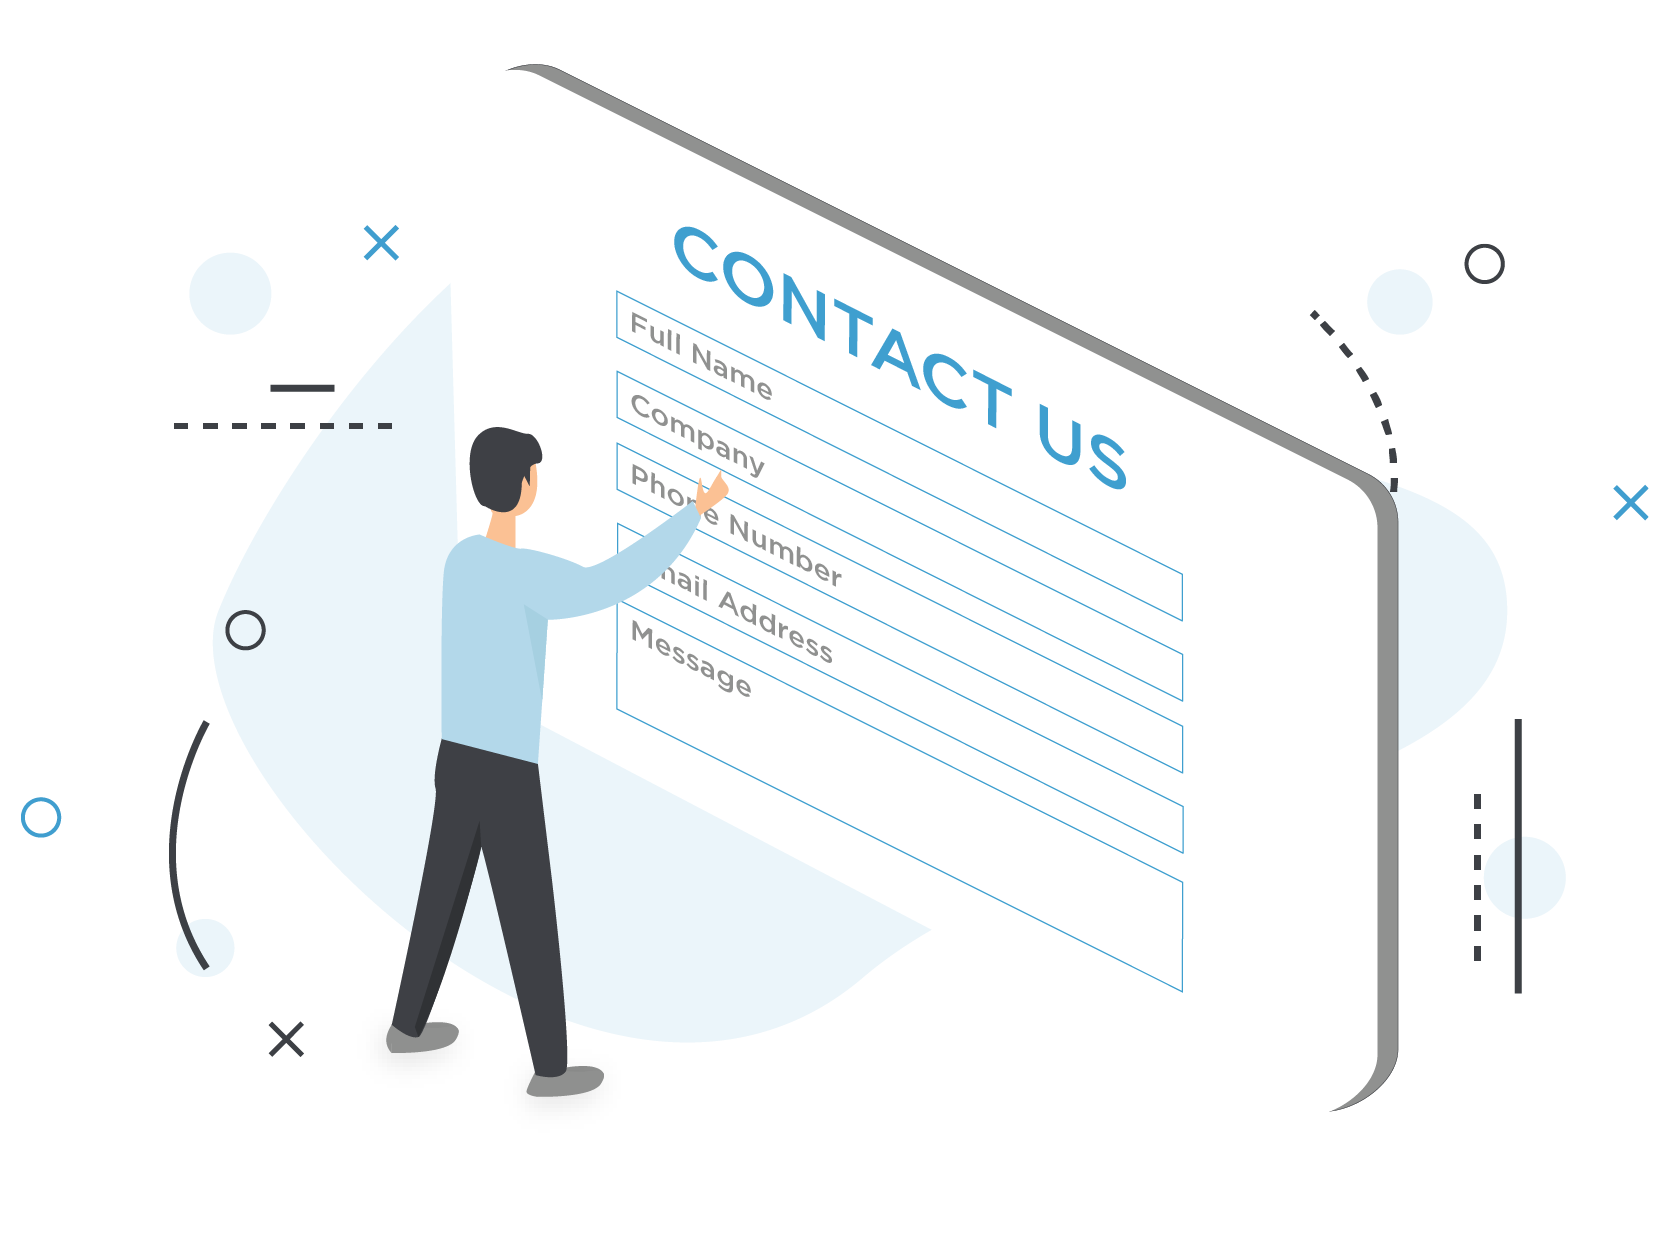 contact-us-small-01-01-01